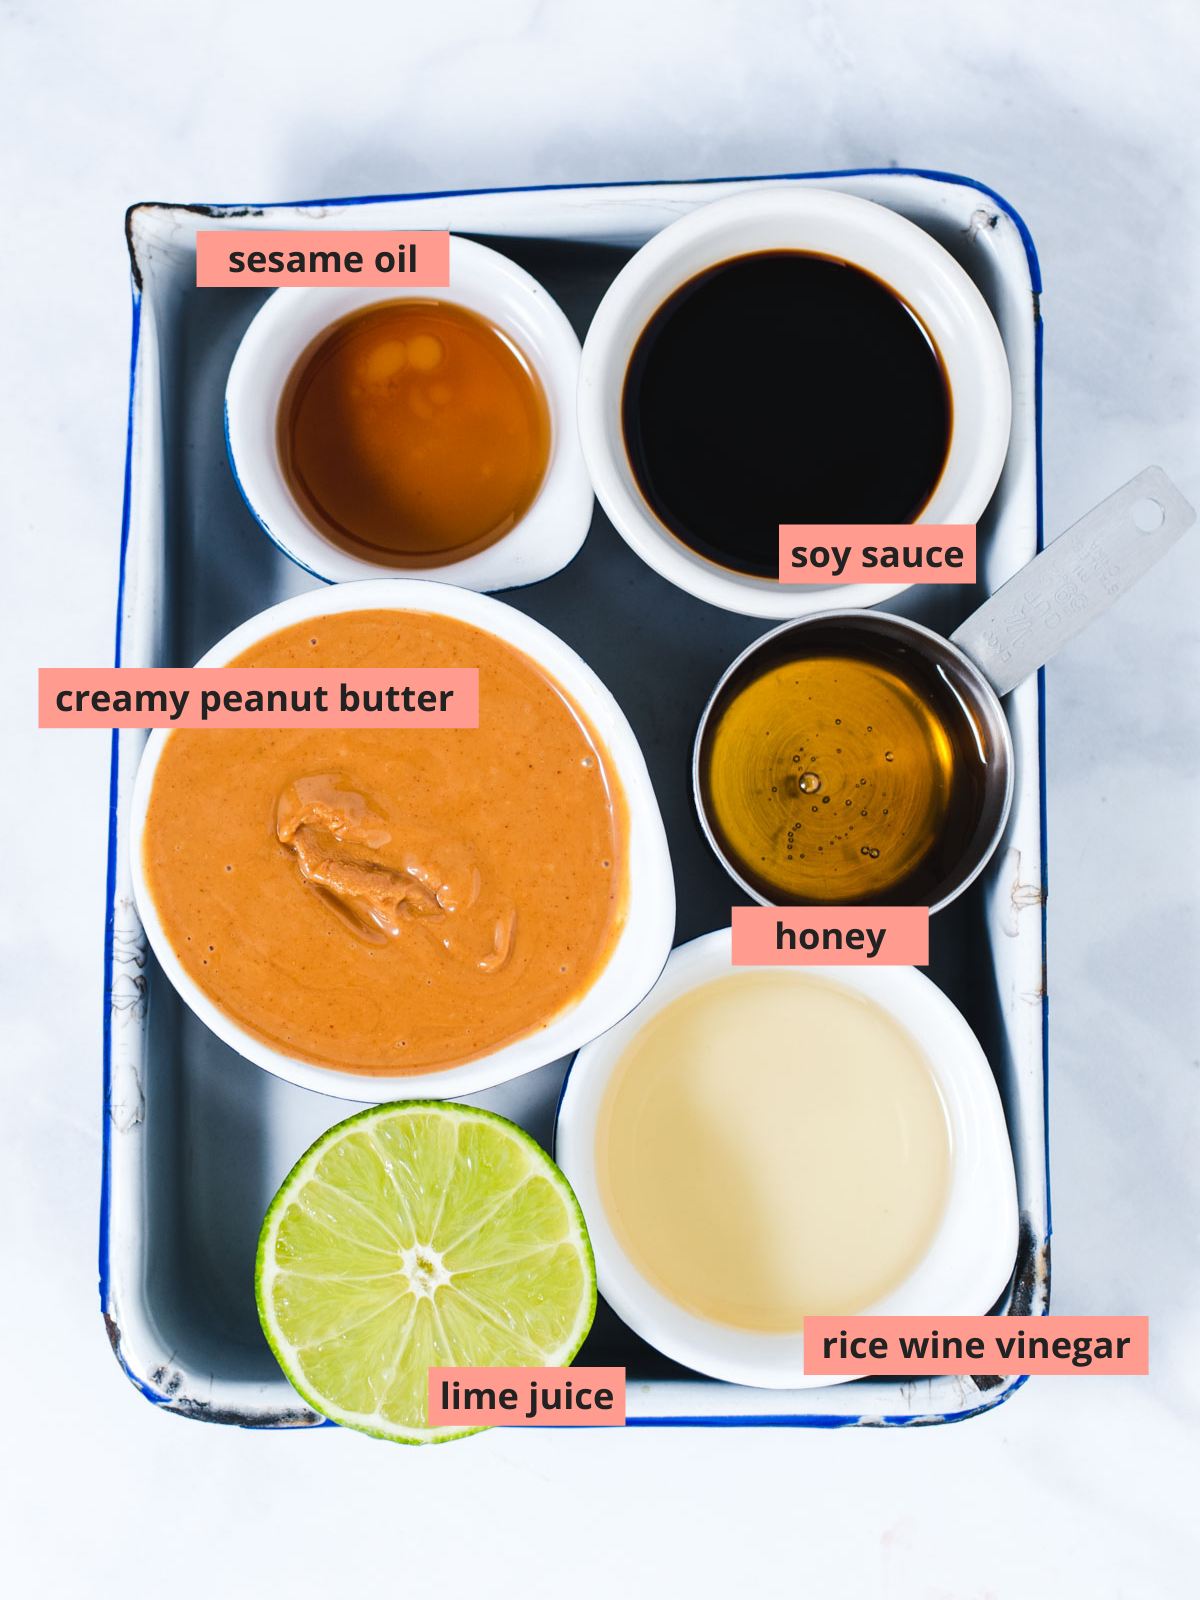 Labeled ingredients to make peanut sauce